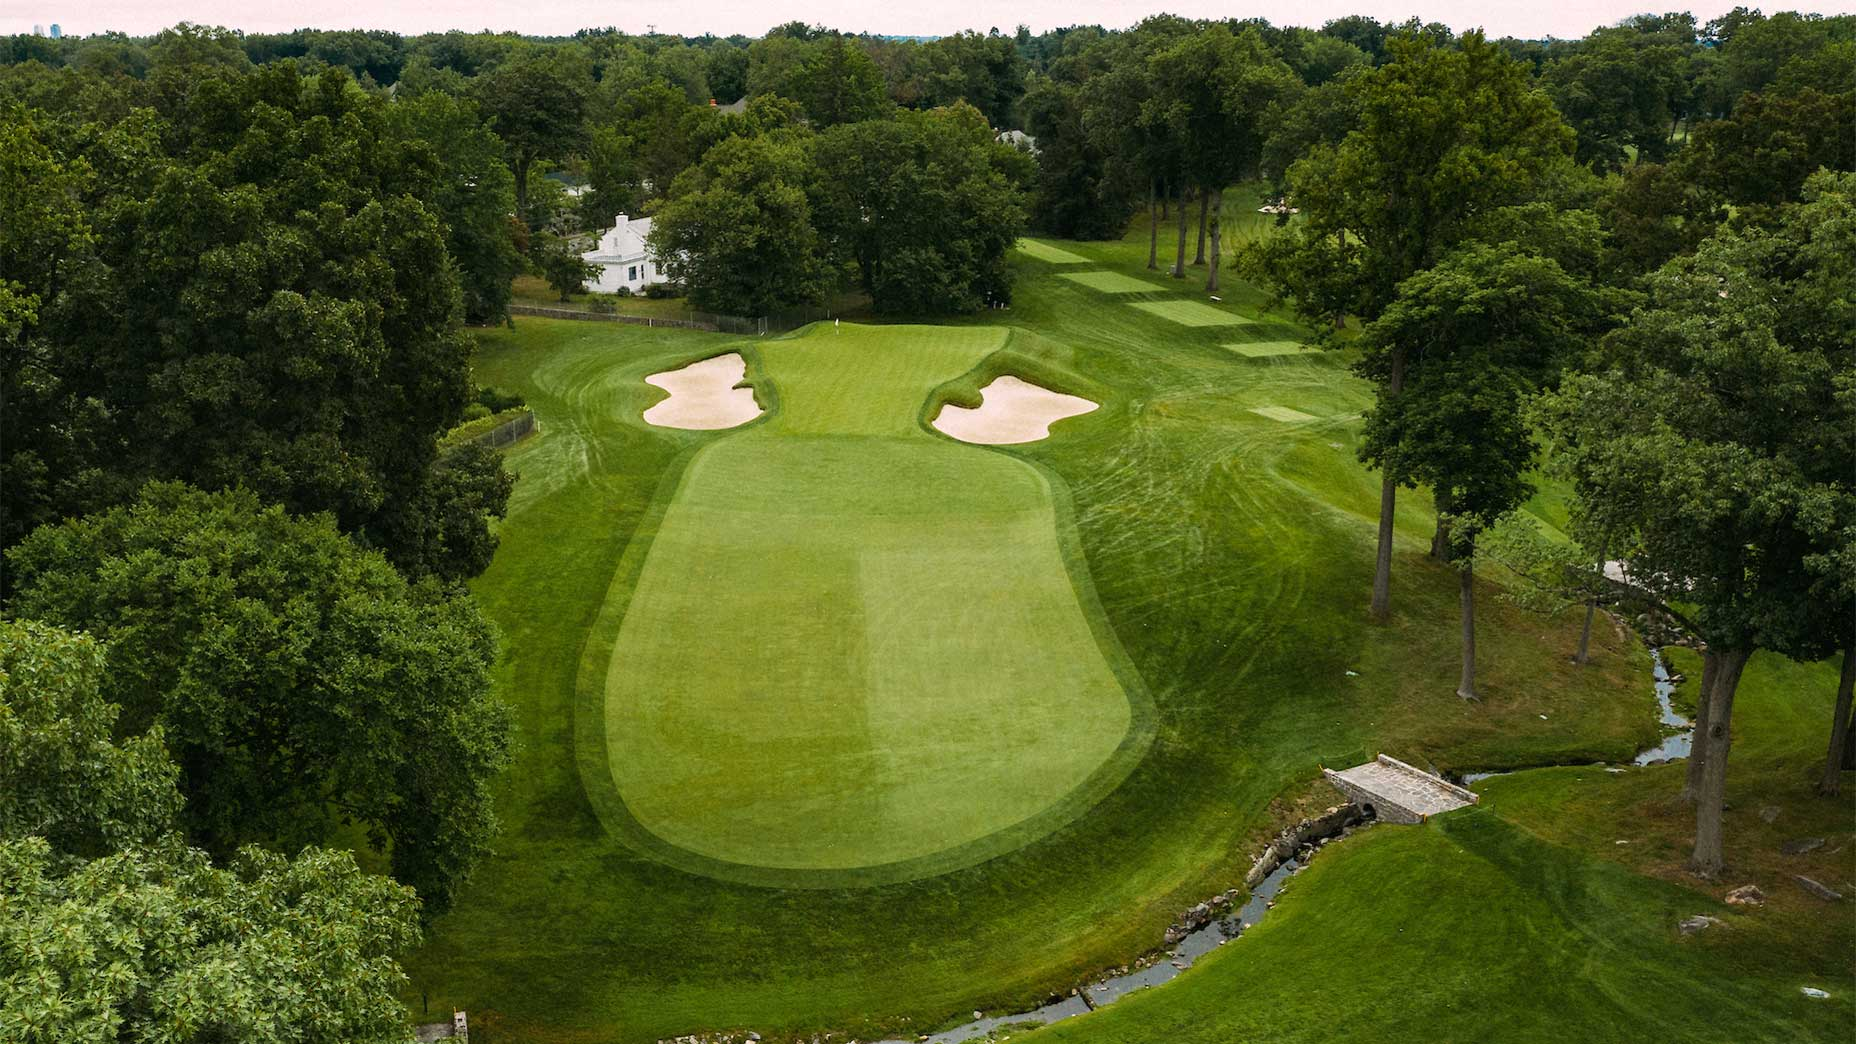 The 15th hole at Winged Foot.